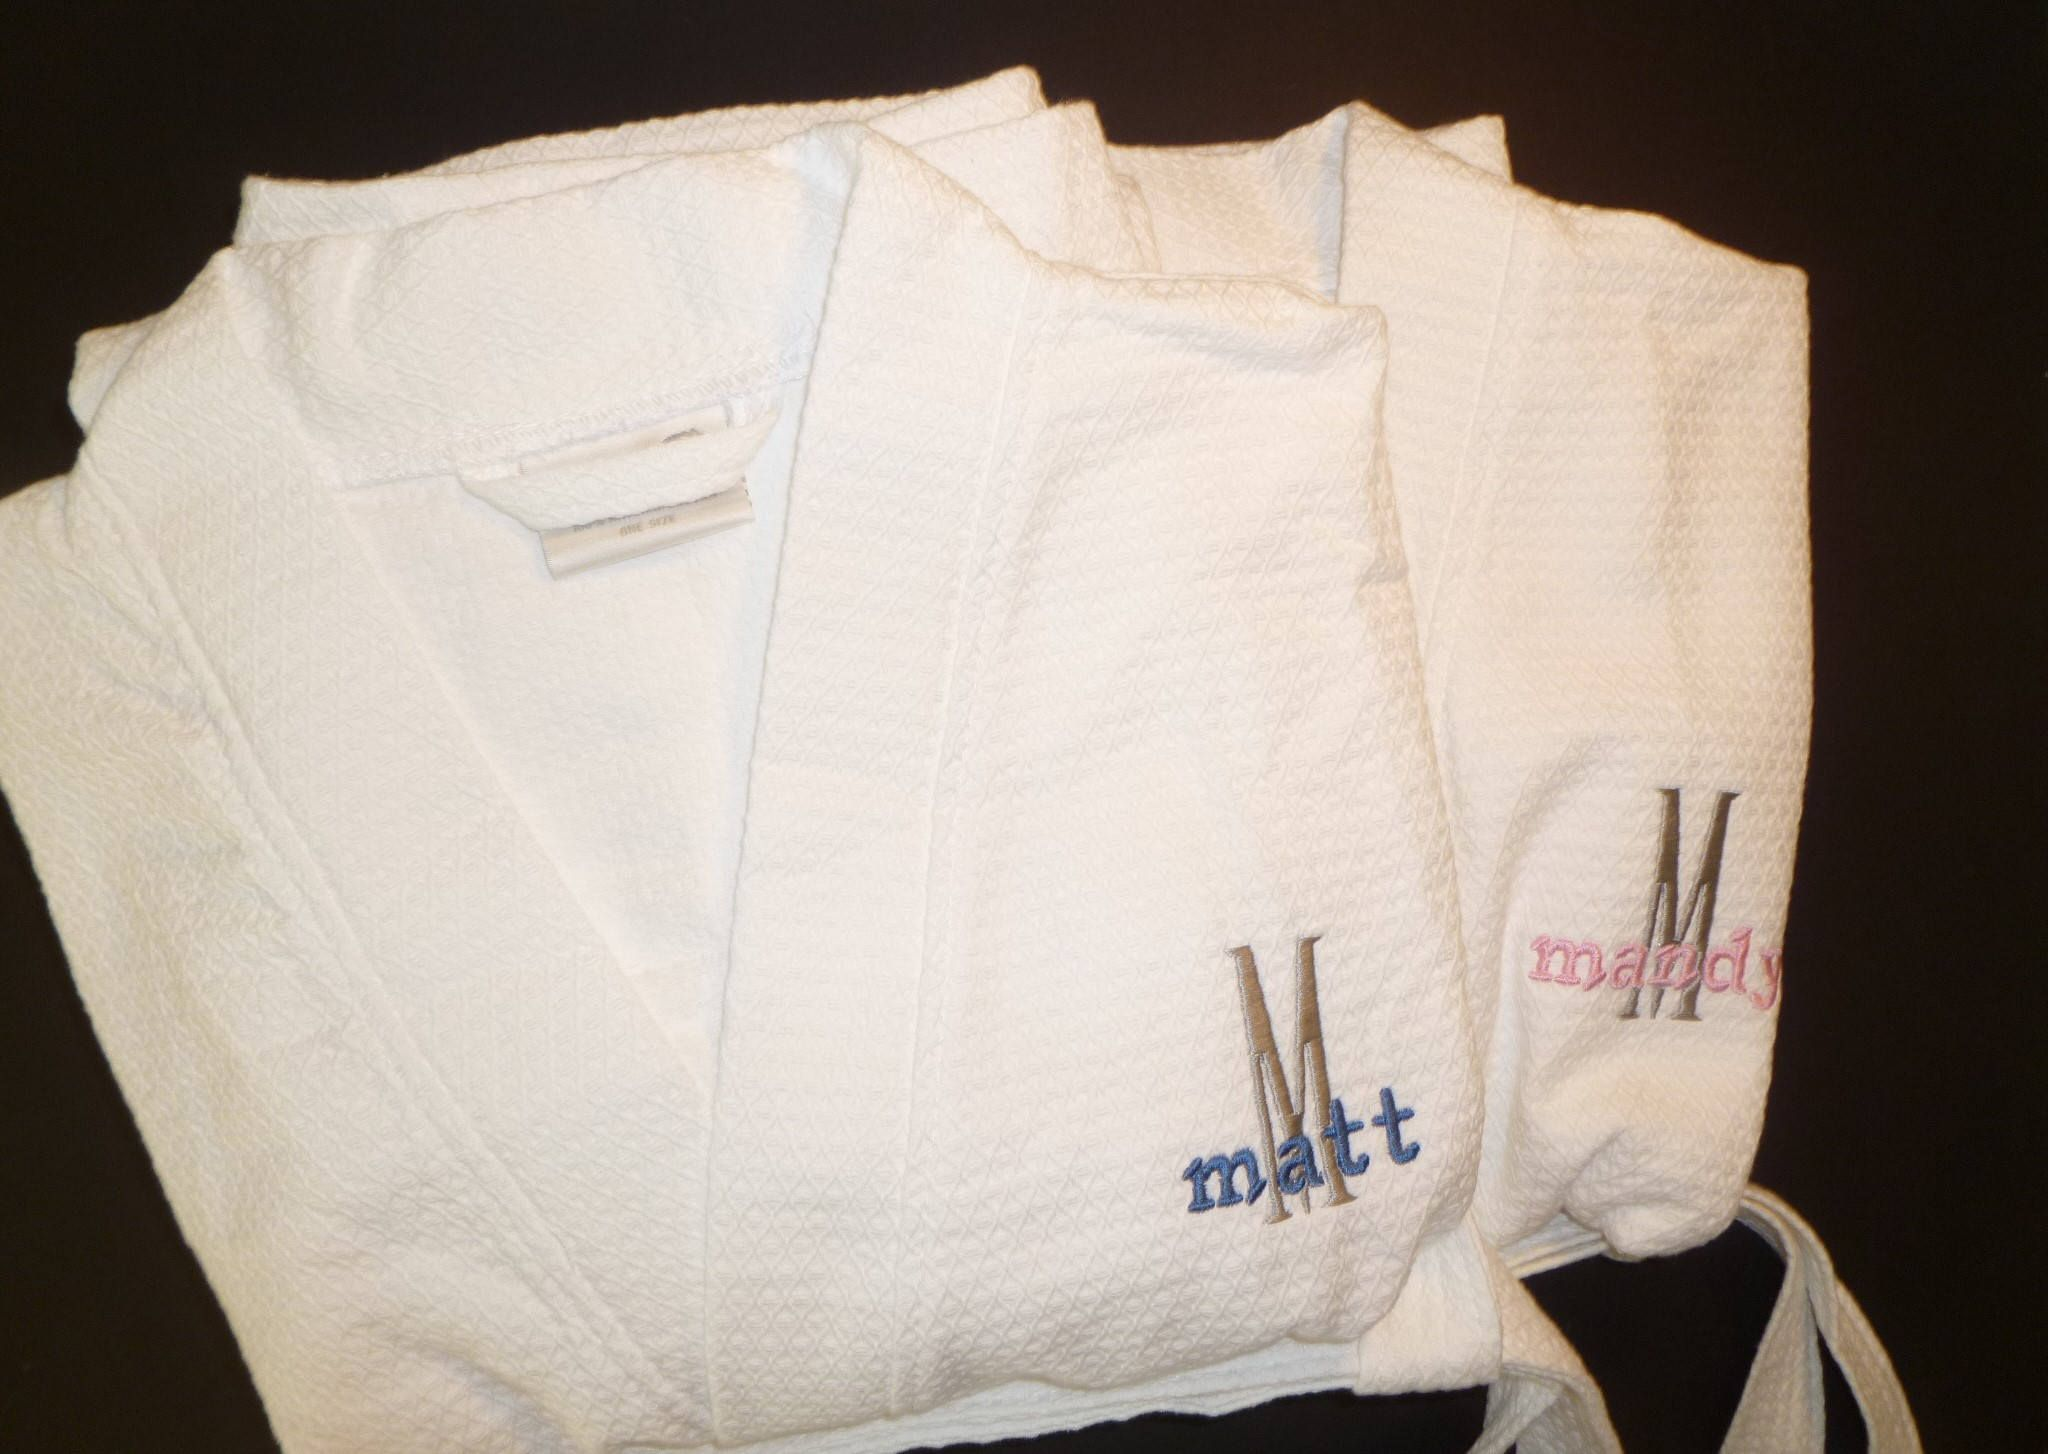 ee9c574c85 2 Personalized Robes Custom Couples Spa Gift Mr and Mrs Gift Bridal Shower  Gift Cotton Monogrammed Embroidered Robe Black Robe White Robe by ...